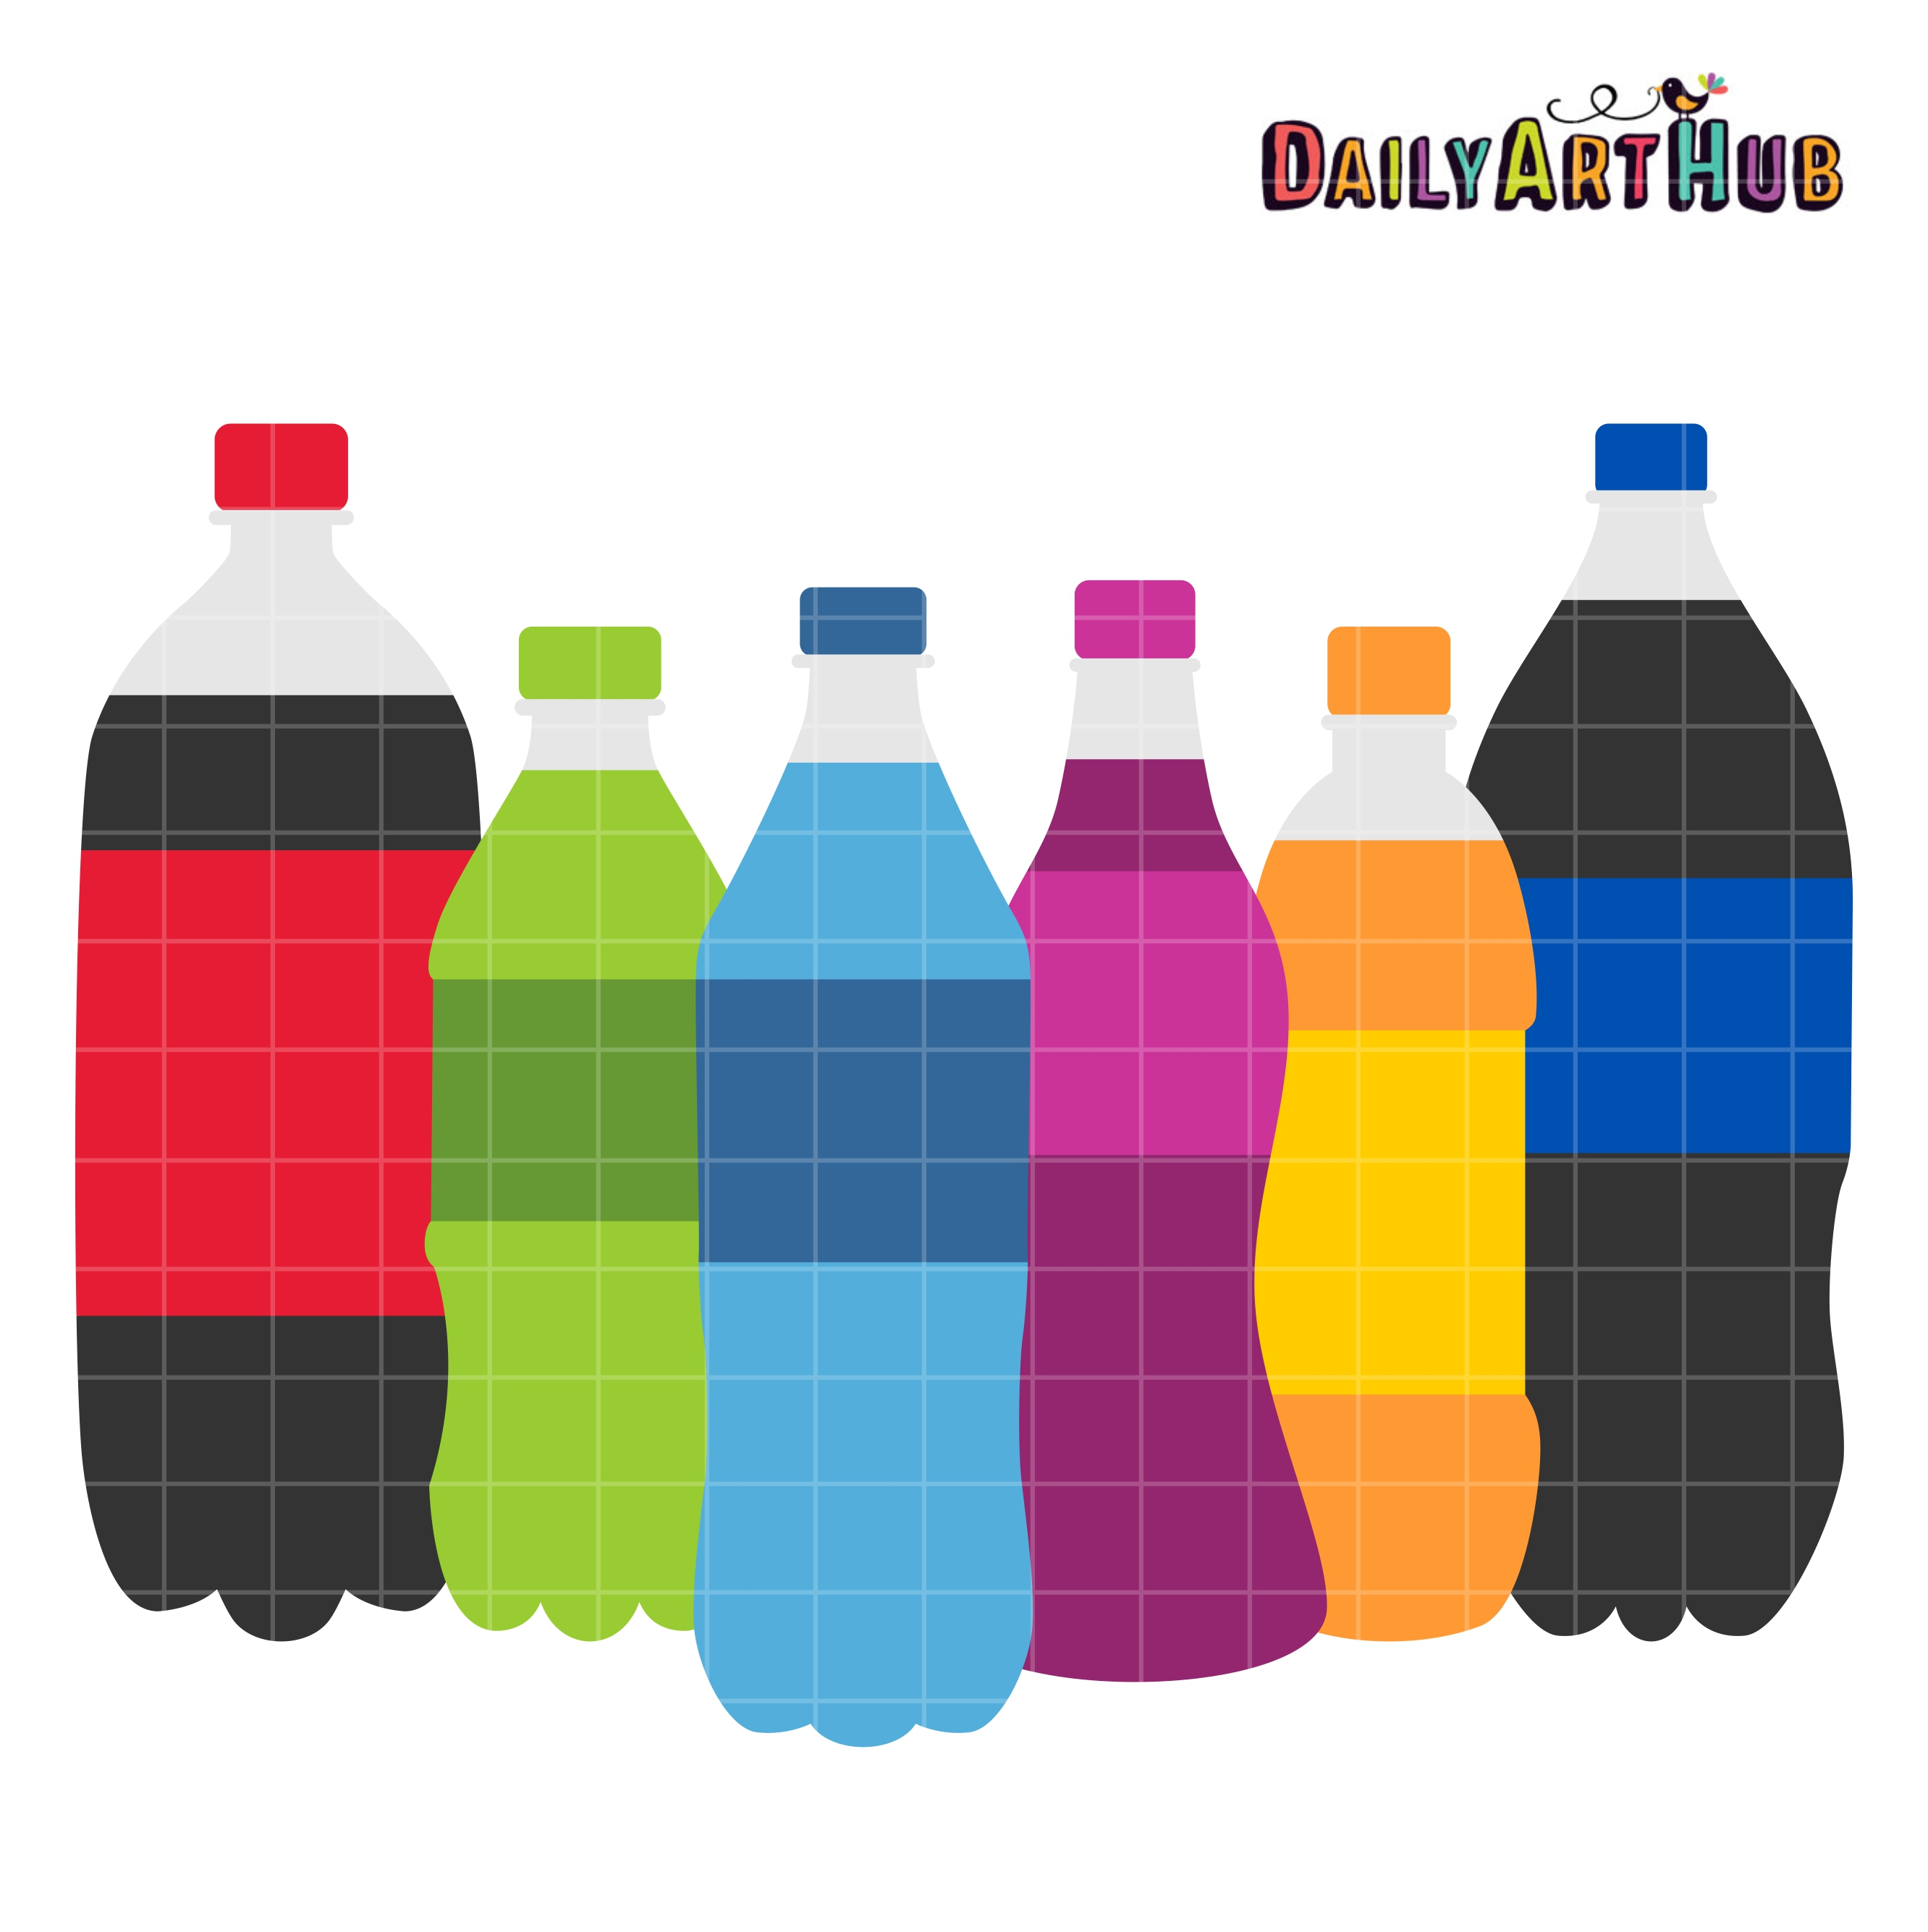 Bottle clipart soda bottle, Bottle soda bottle Transparent FREE for.